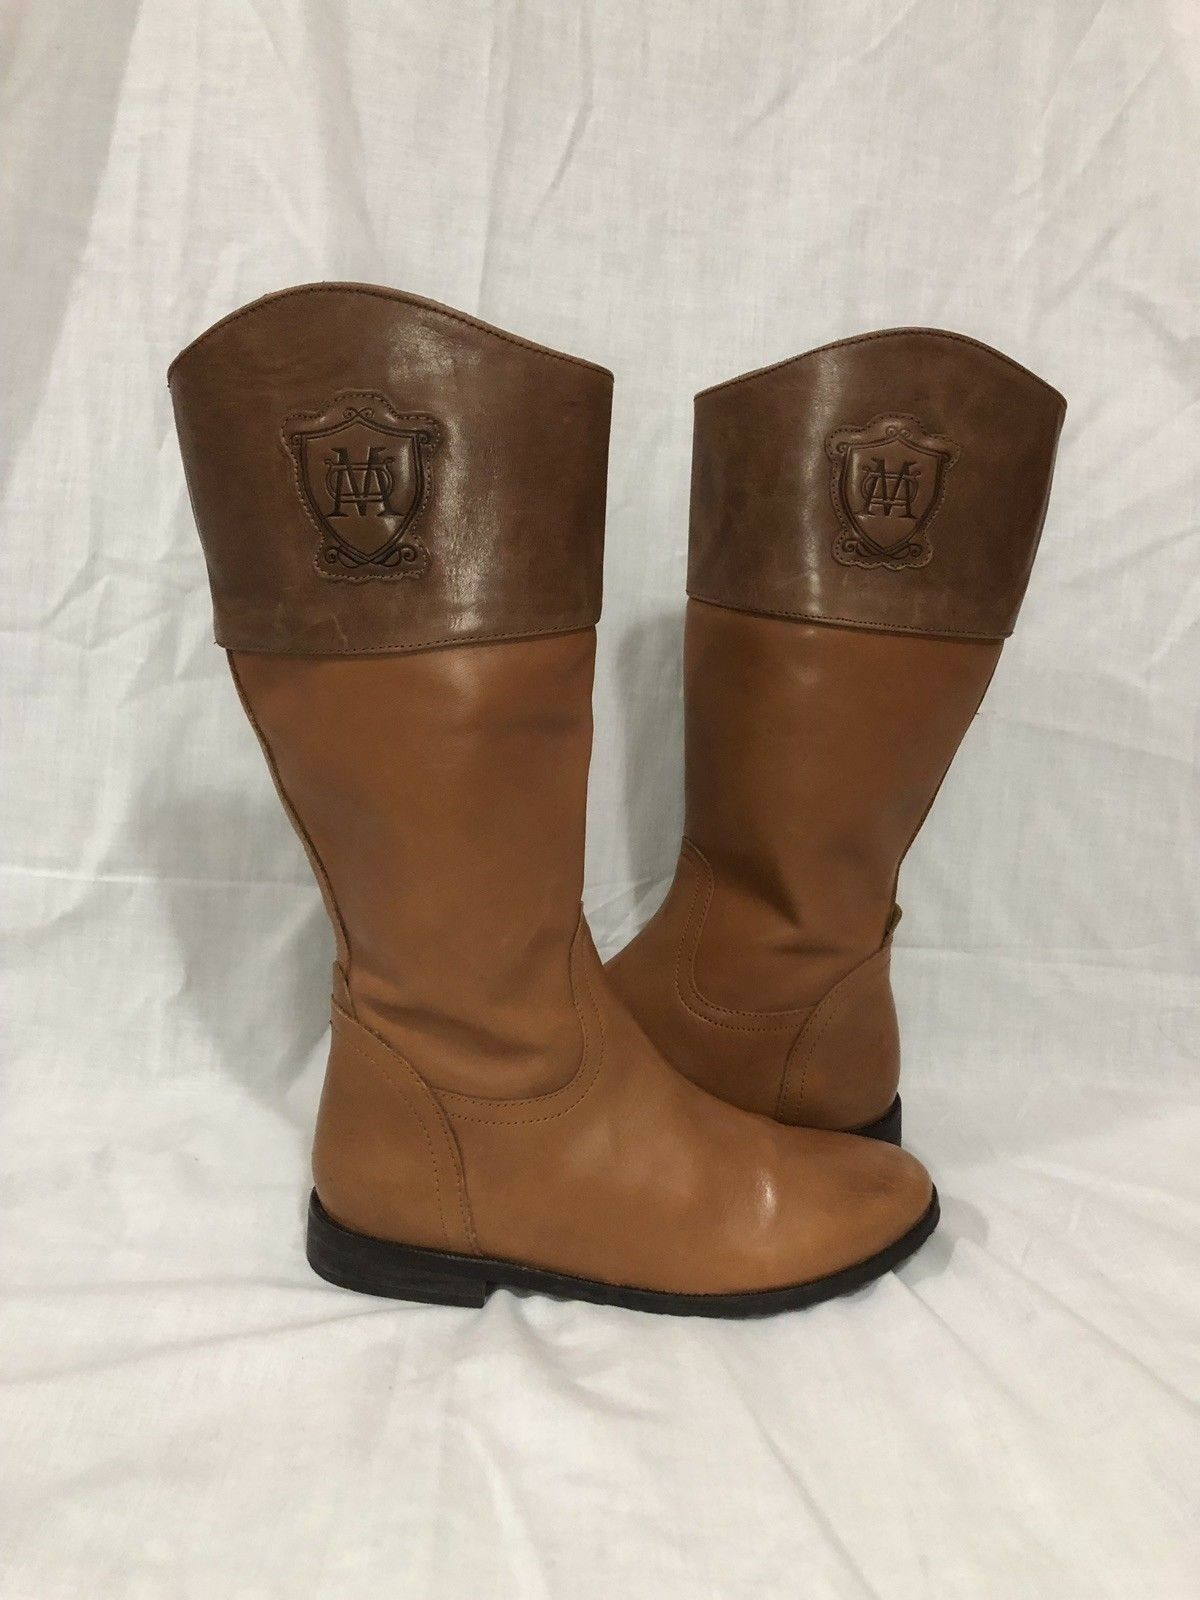 Massimo Dutti Caramel brown logo leather Zip tall riding boots size 36, US 6